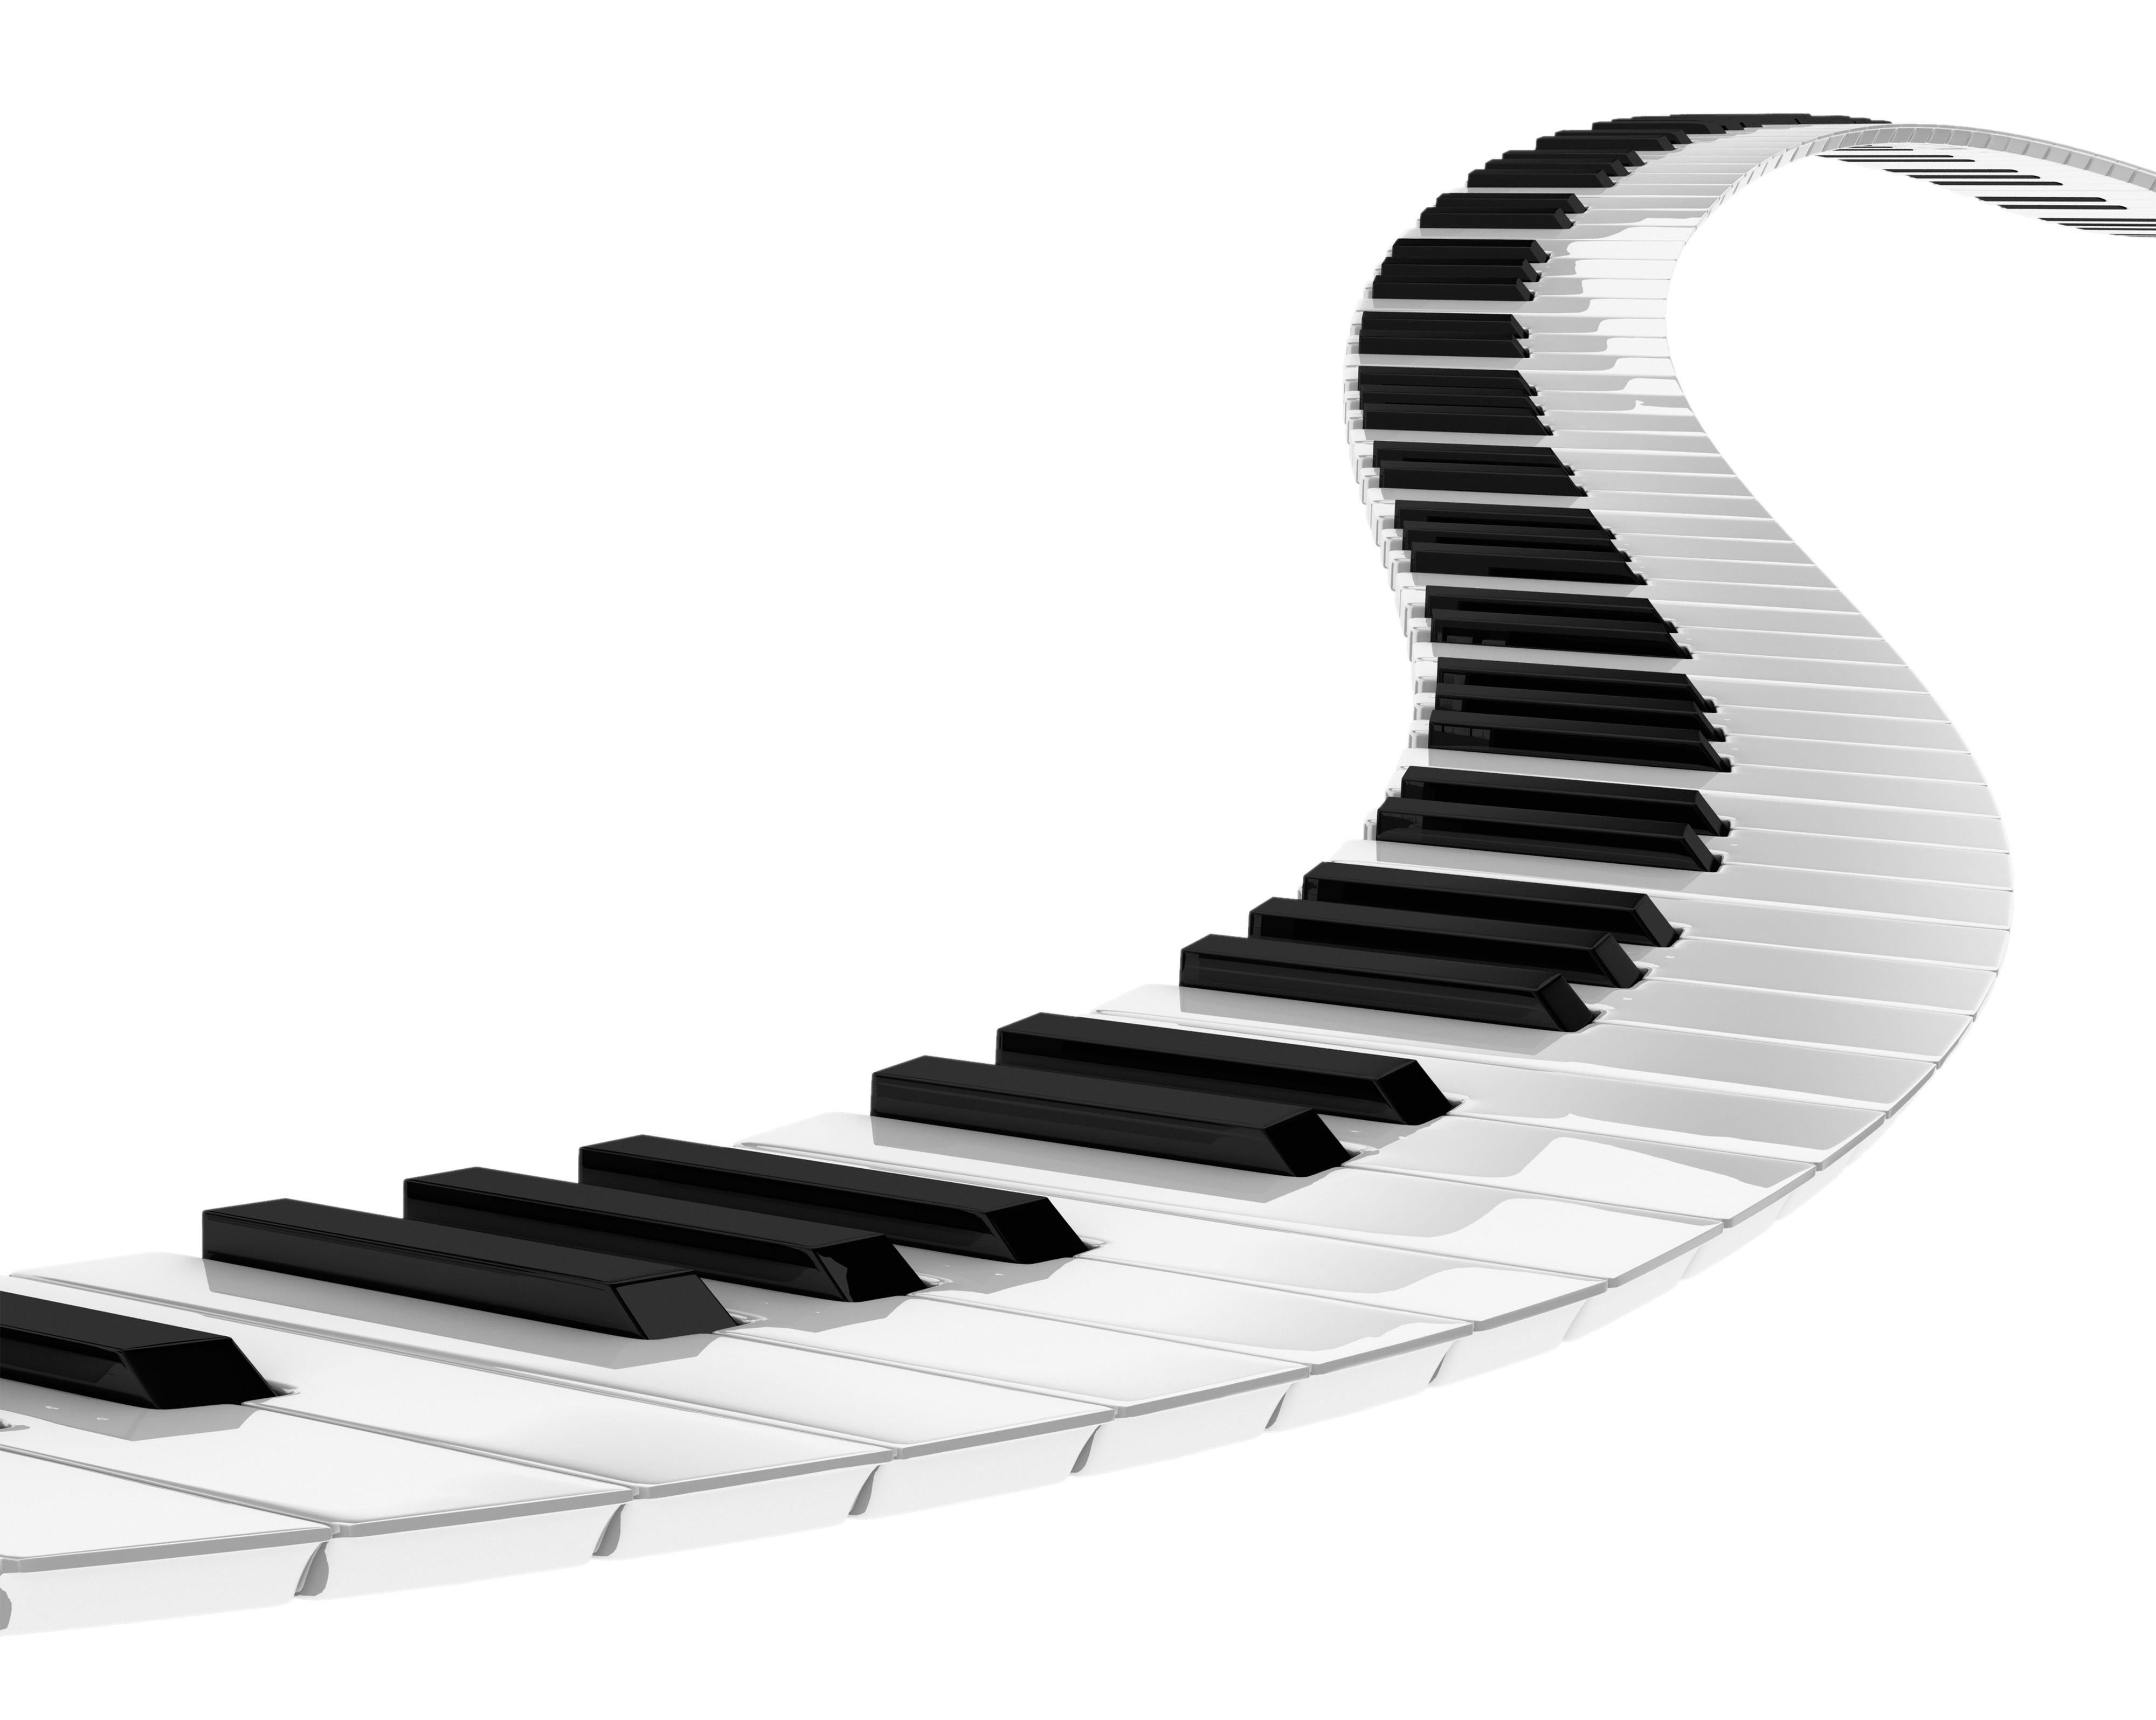 freeuse download Clipart ladder. Piano transparent png picture.